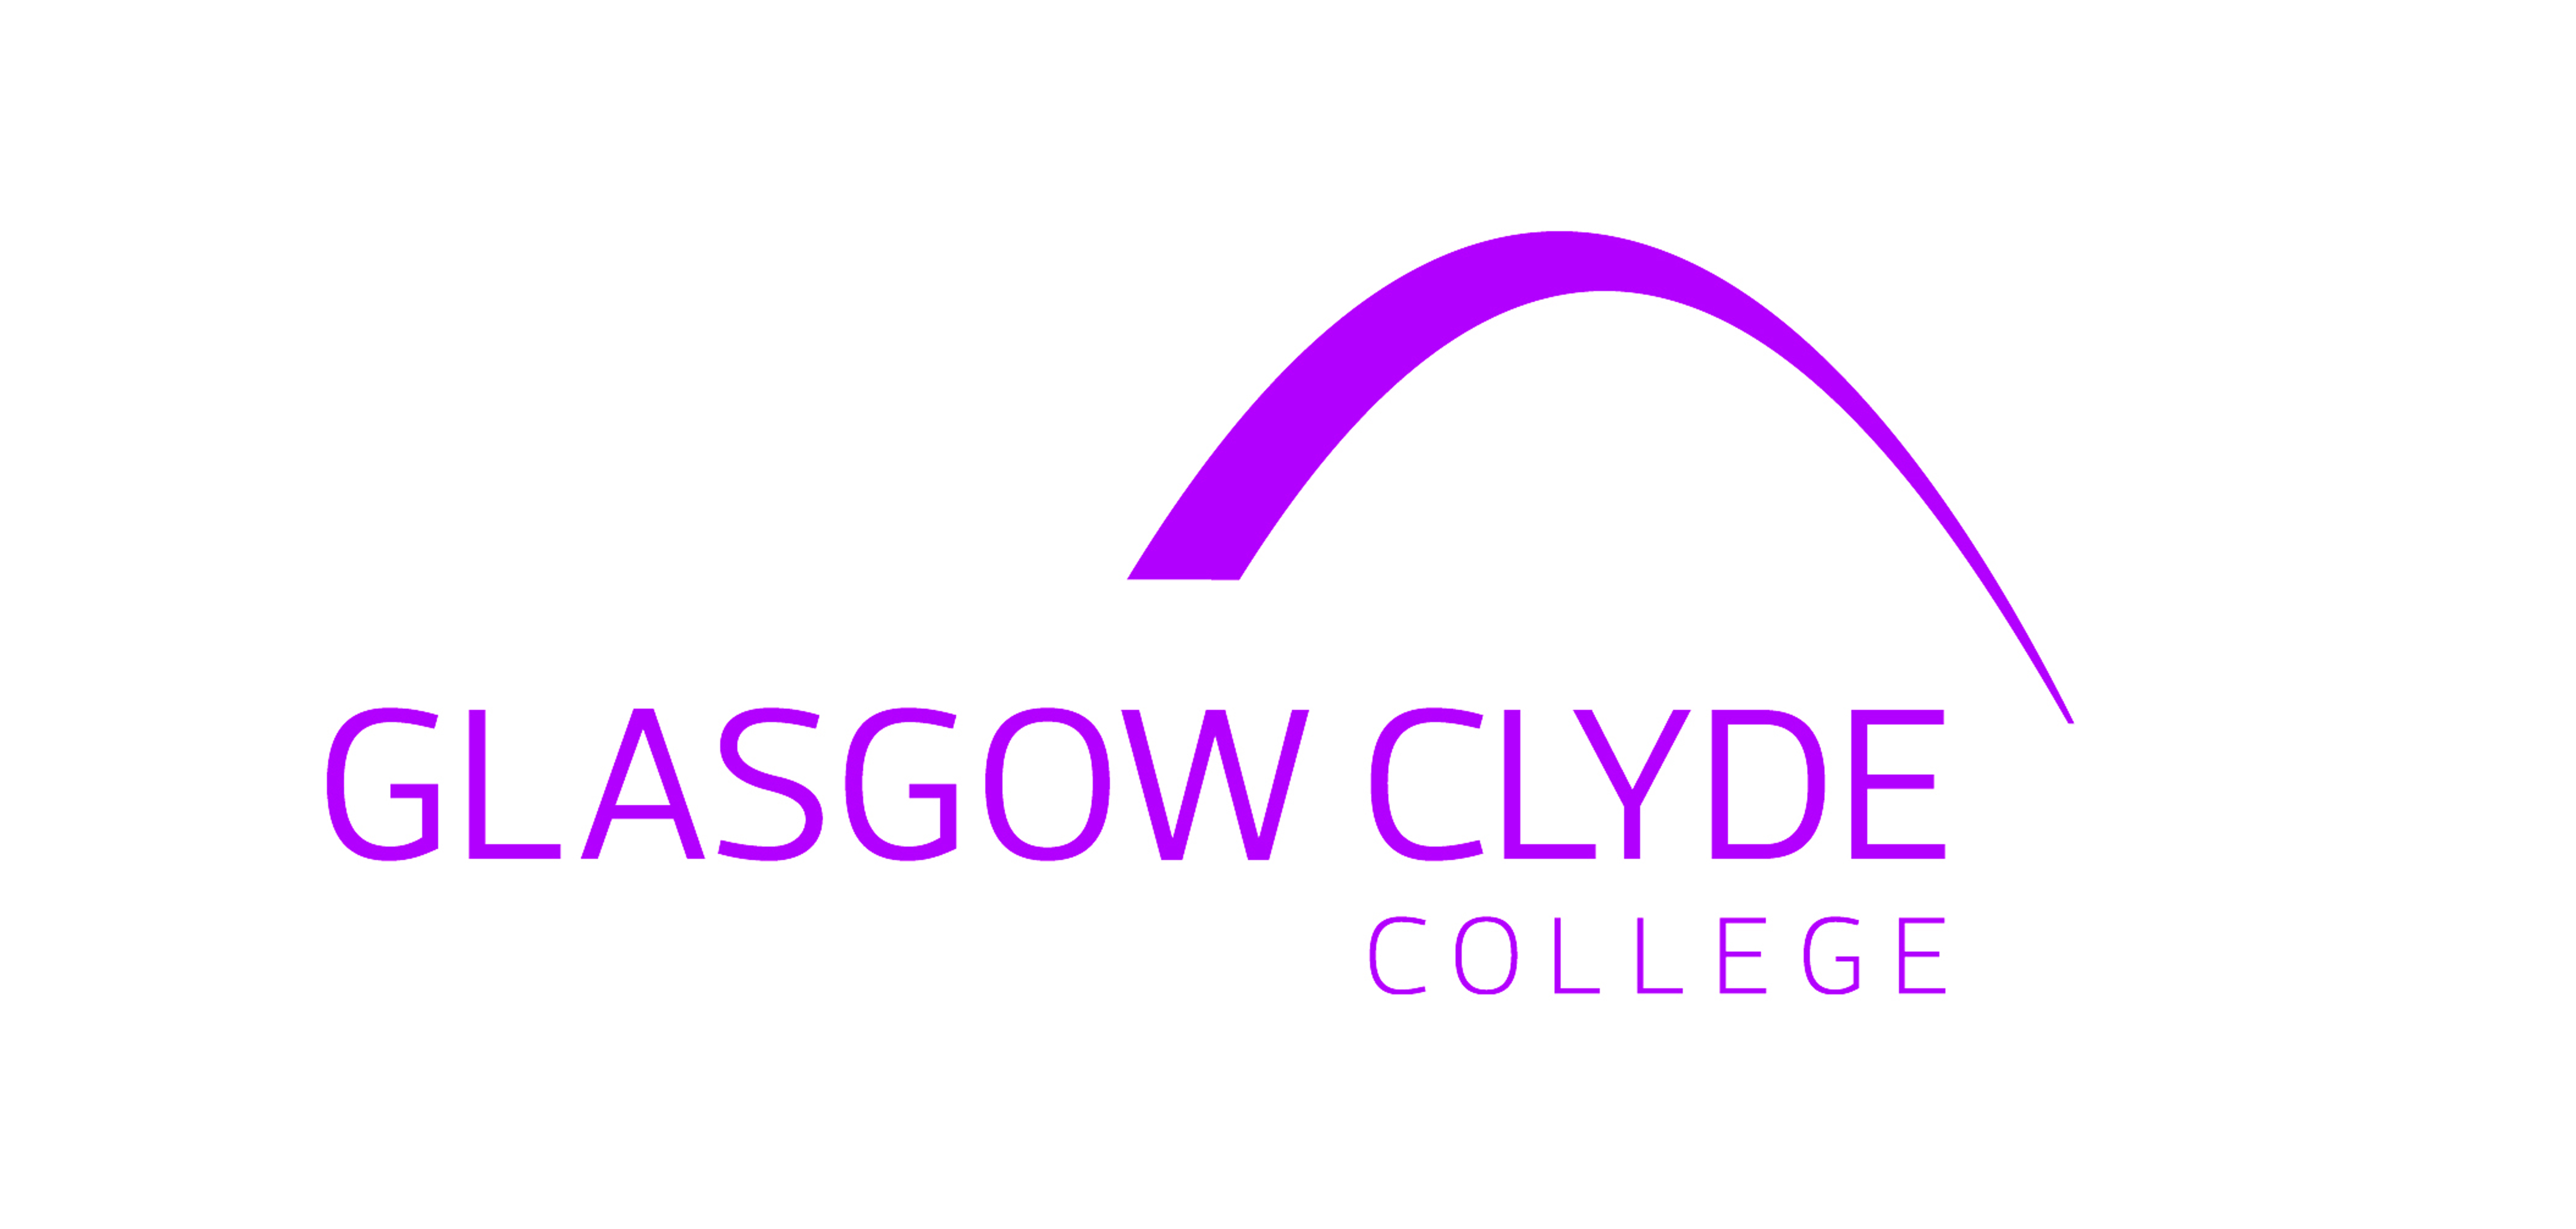 Visit Glasgow Clyde College website